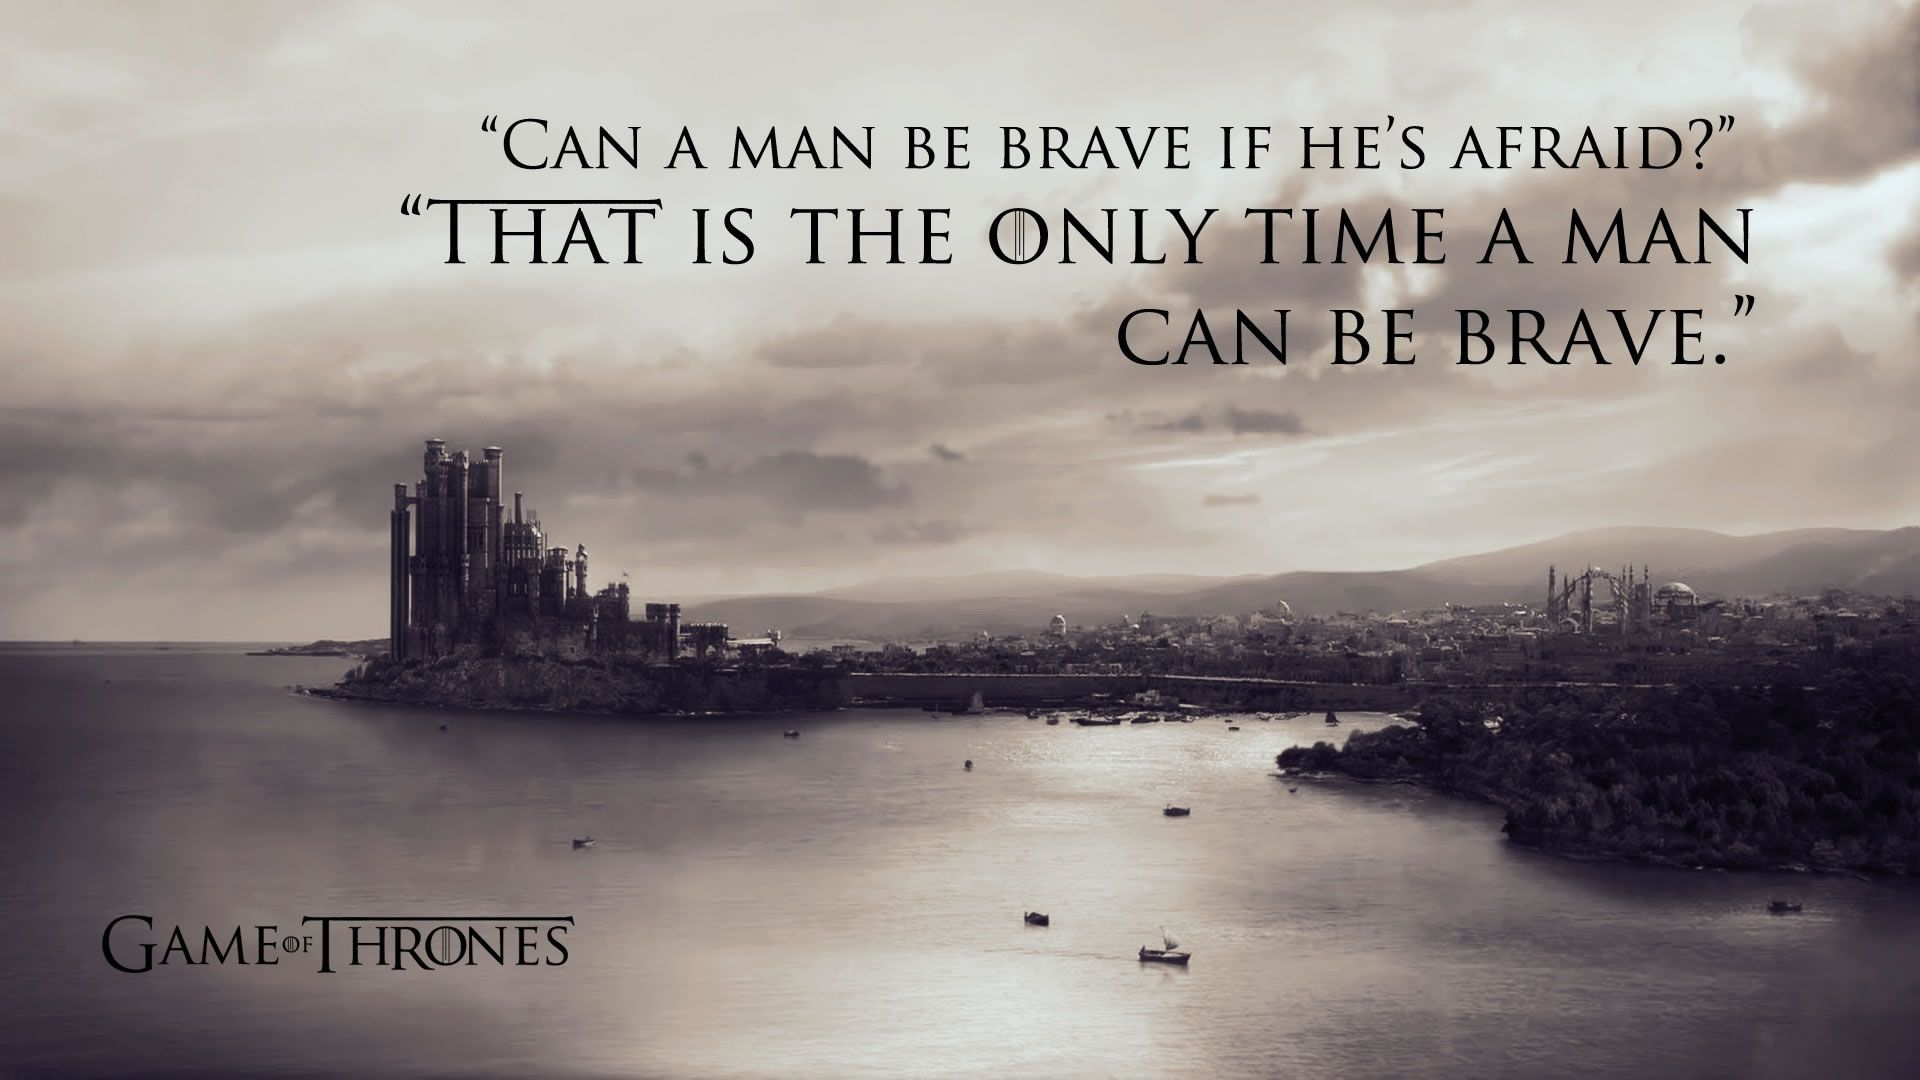 Check Out These Game Of Thrones Windows 10 Wallpapers Game Of Thrones Quotes Game Of Thrones King Game Of Thrones Instagram